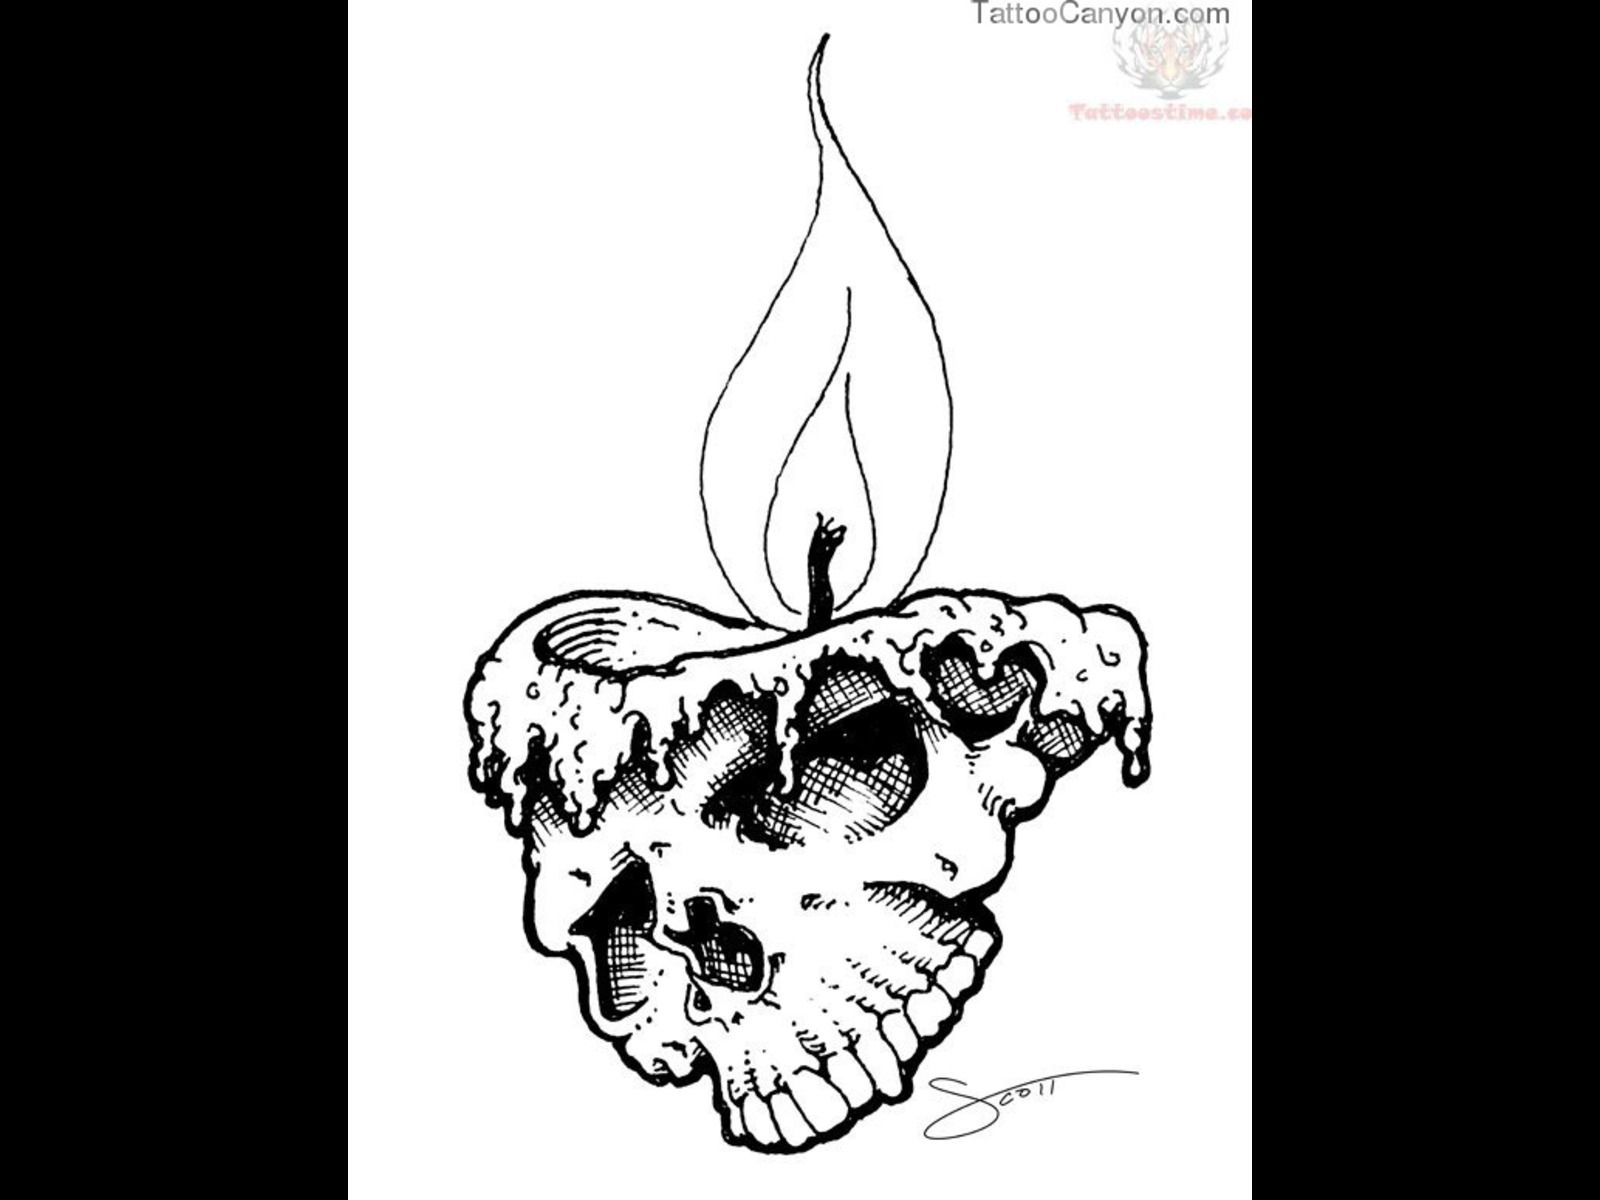 13290 melting skull candle tattoo design tattoo design 1600x1200 jpg ripped skin skull. Black Bedroom Furniture Sets. Home Design Ideas